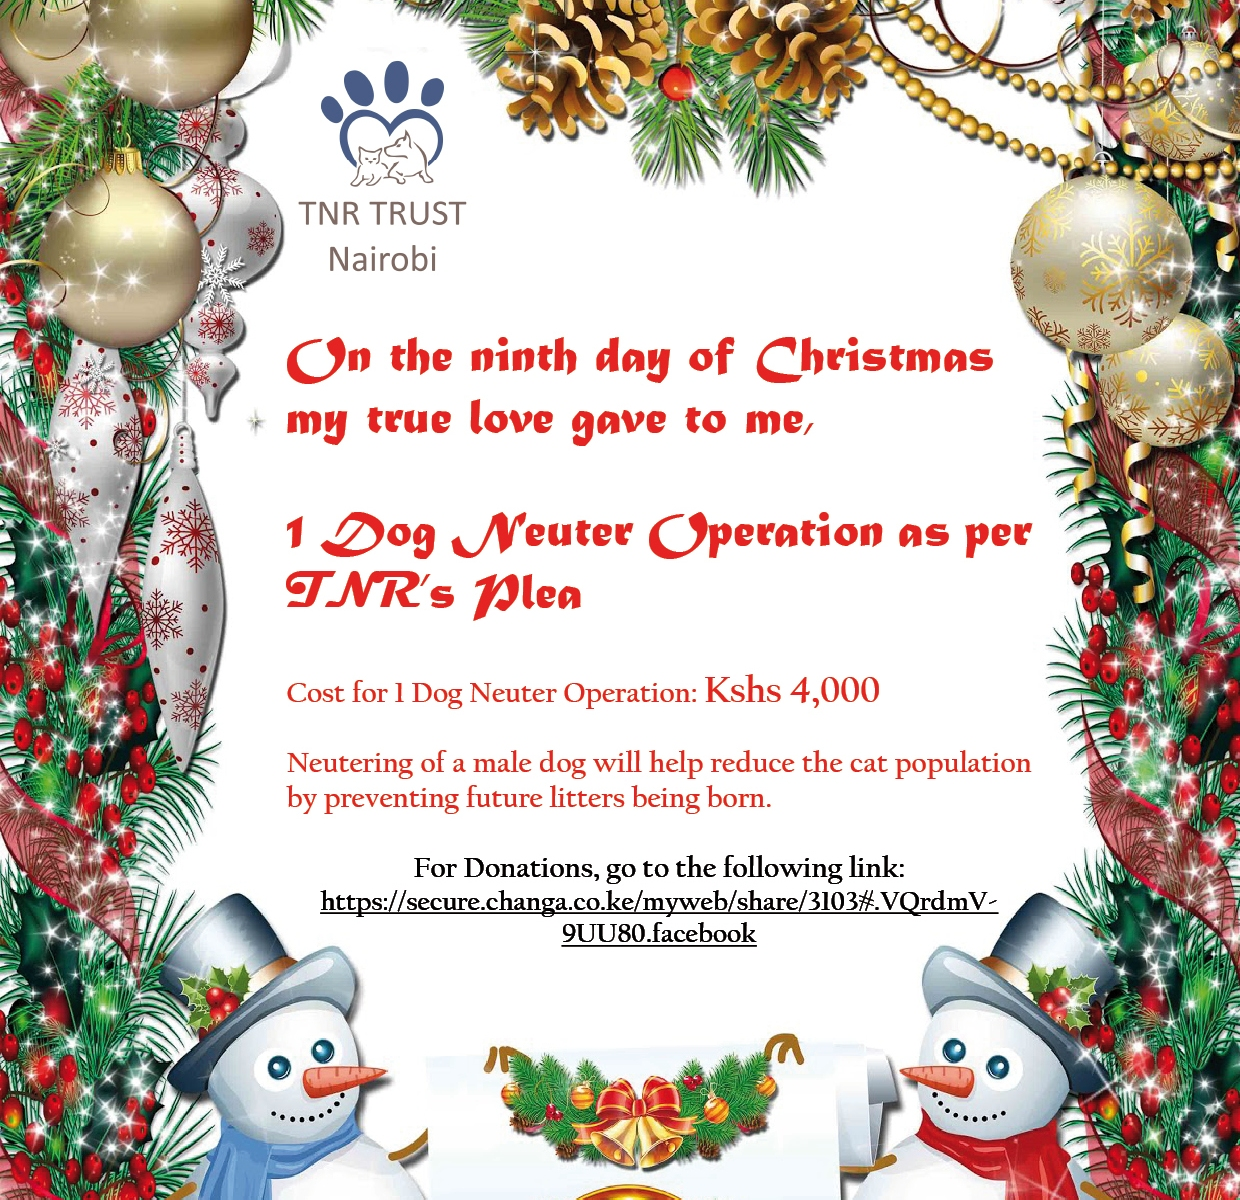 12 Days of Christmas: Day 9 | TNR Trust